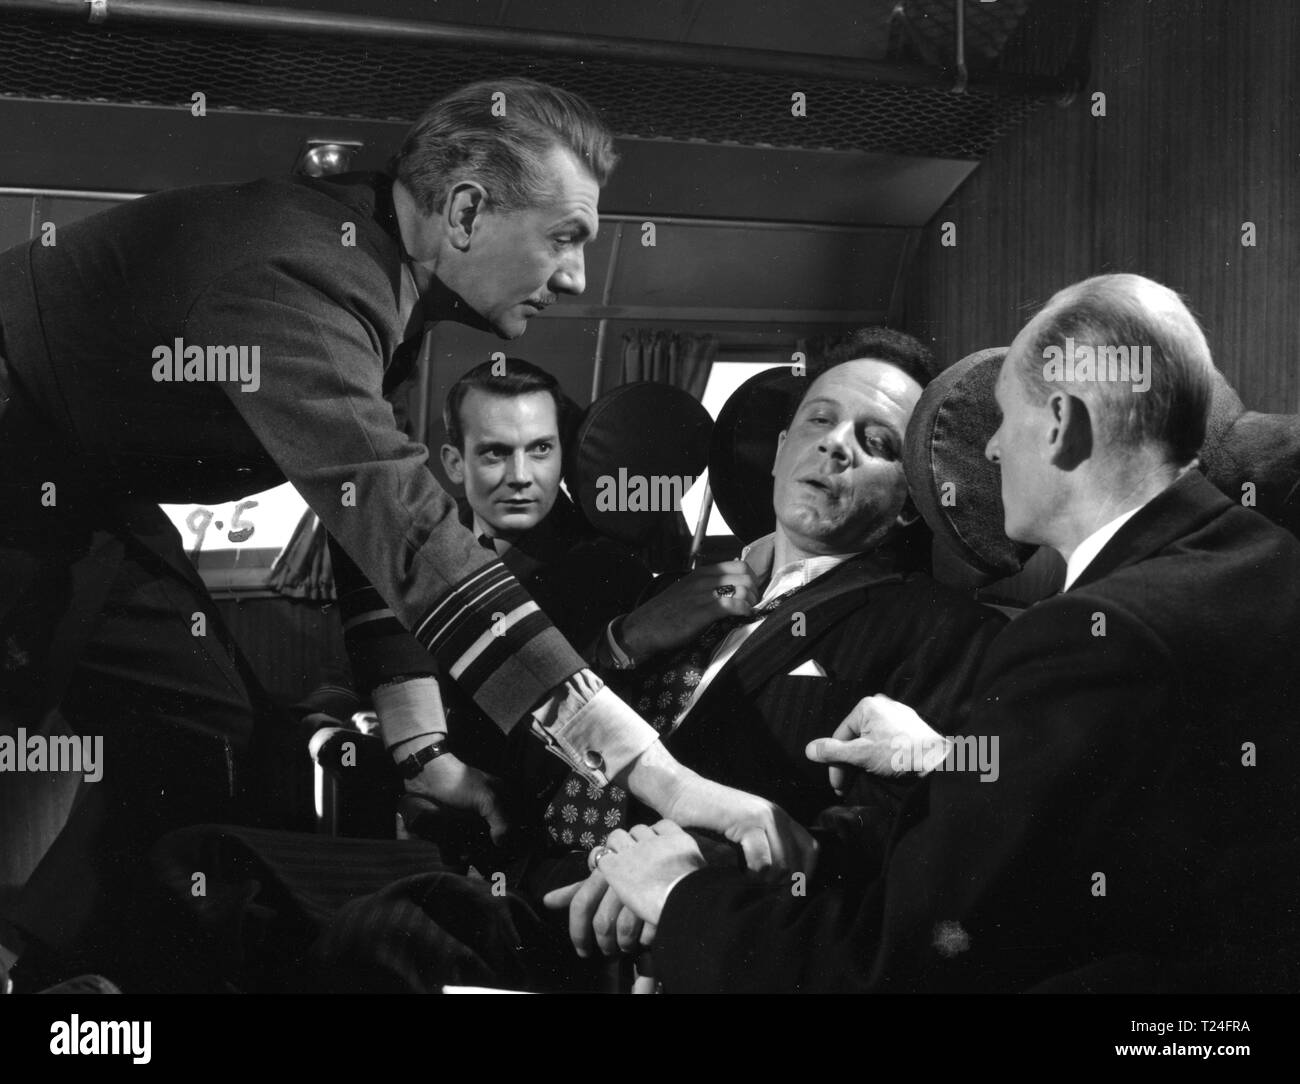 The Night My Number Came Up (1955)  Michael Redgrave, Denholm Elliott, George Rose,      Date: 1955 - Stock Image